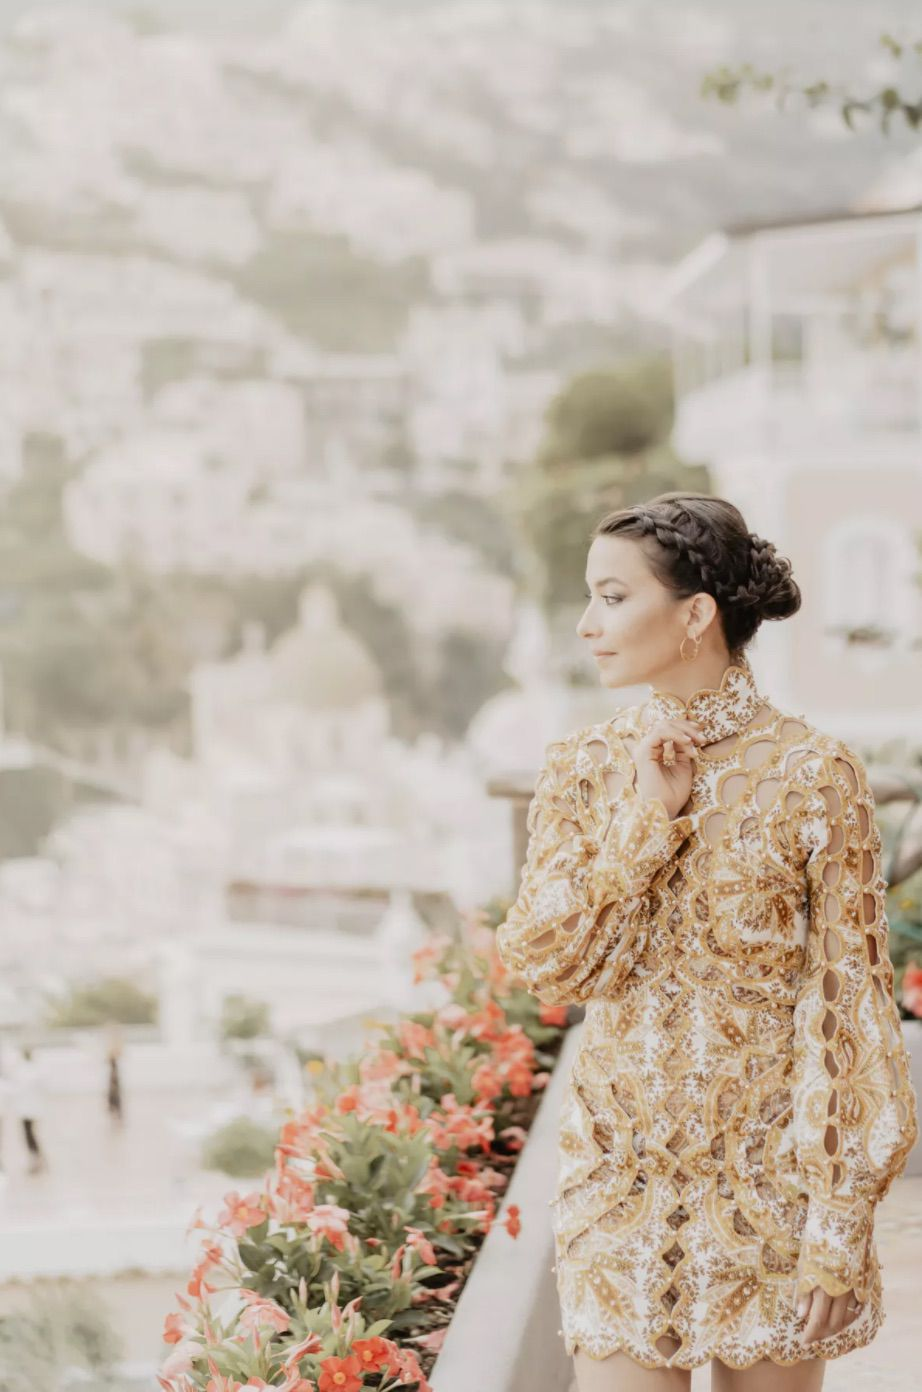 Bride in braided updo looking out of floral lined balcony